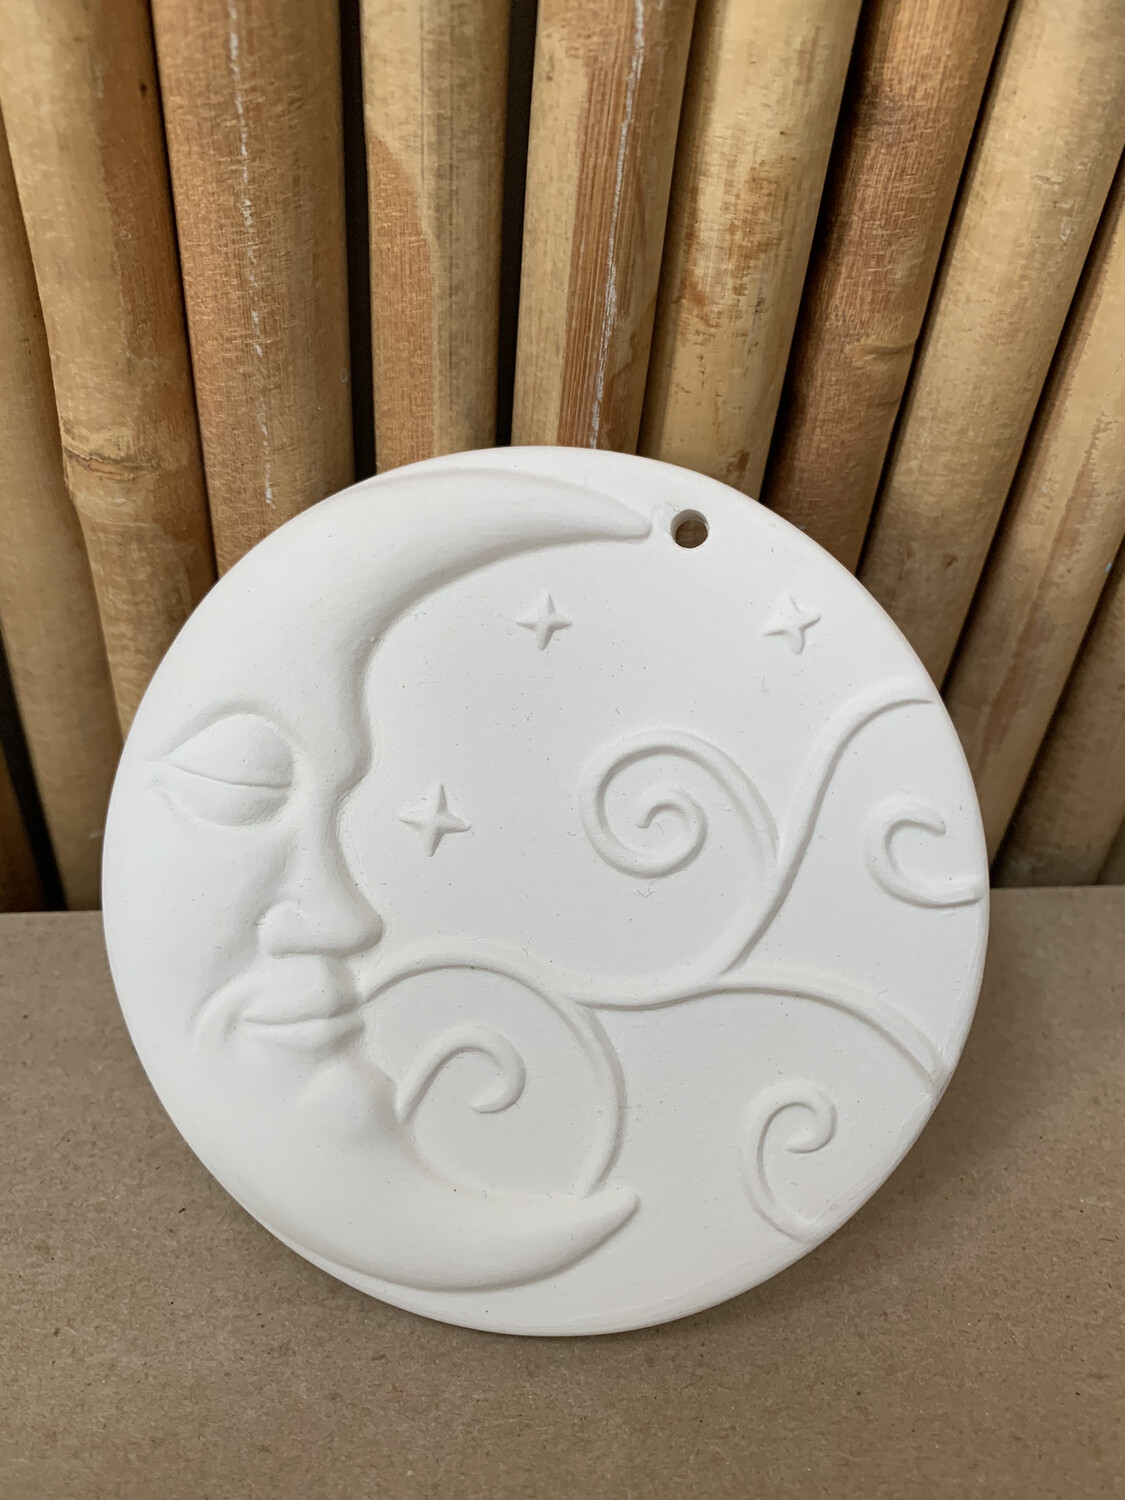 Paint Your Own Pottery - Ceramic   Moon Christmas Ornament Painting Kit